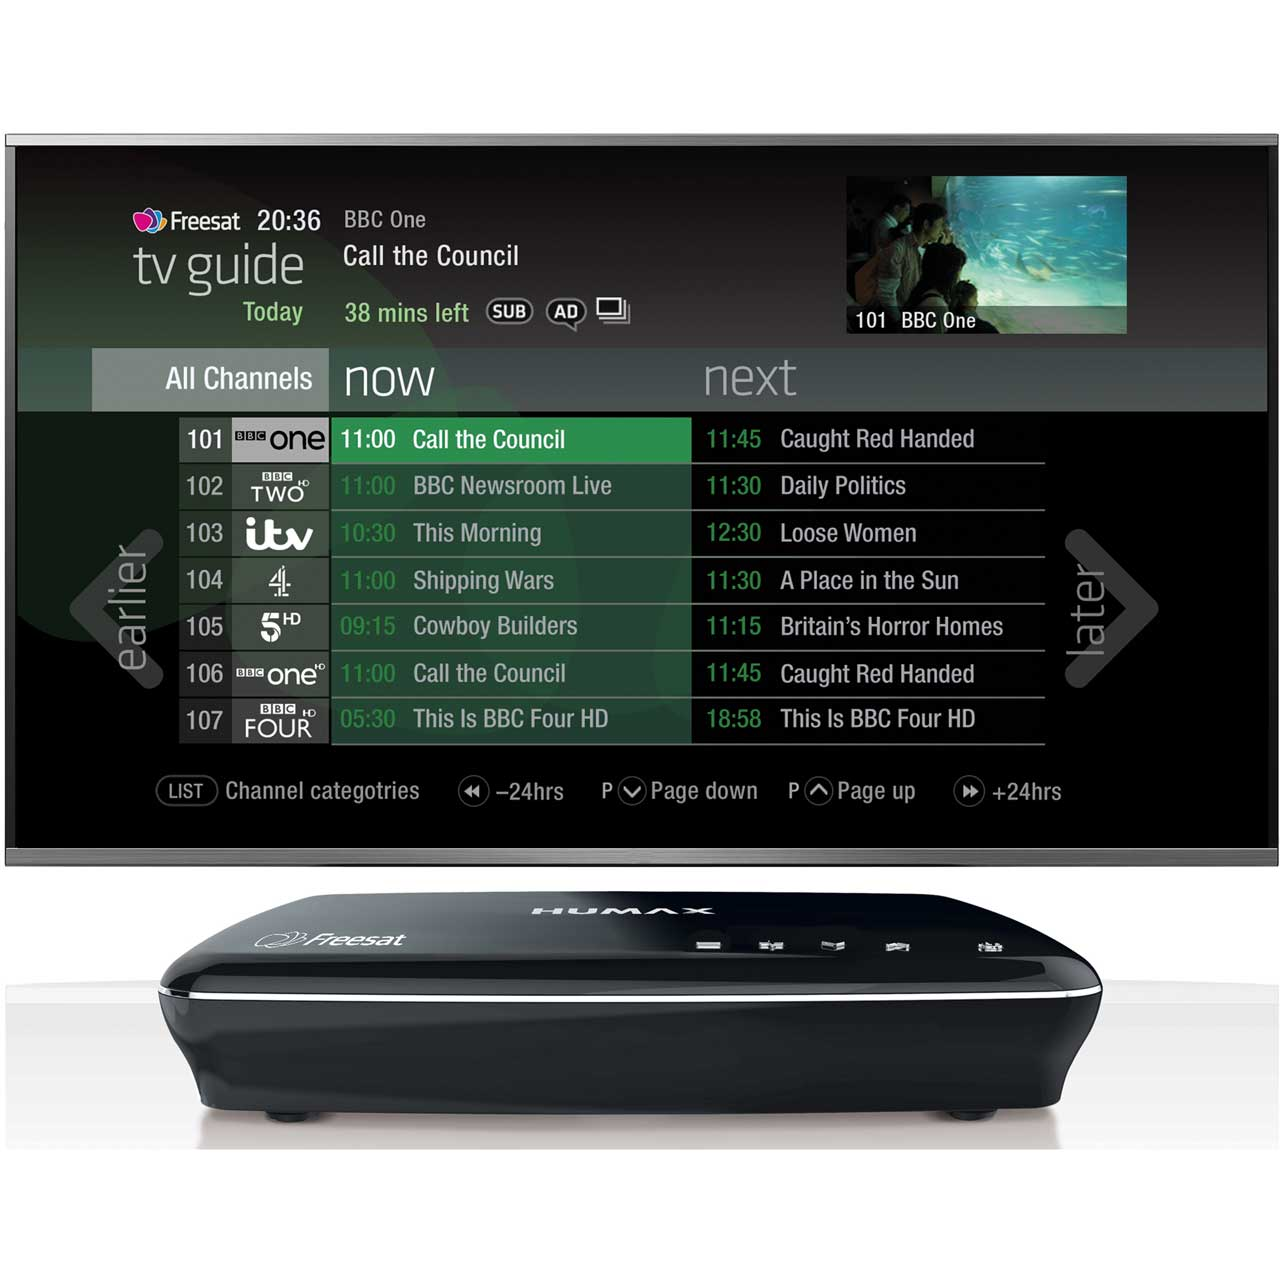 Humax HDR-1100S Smart Freesat HD Set Top Box with Freetime Recorder and 500  GB Hard Drive - Black